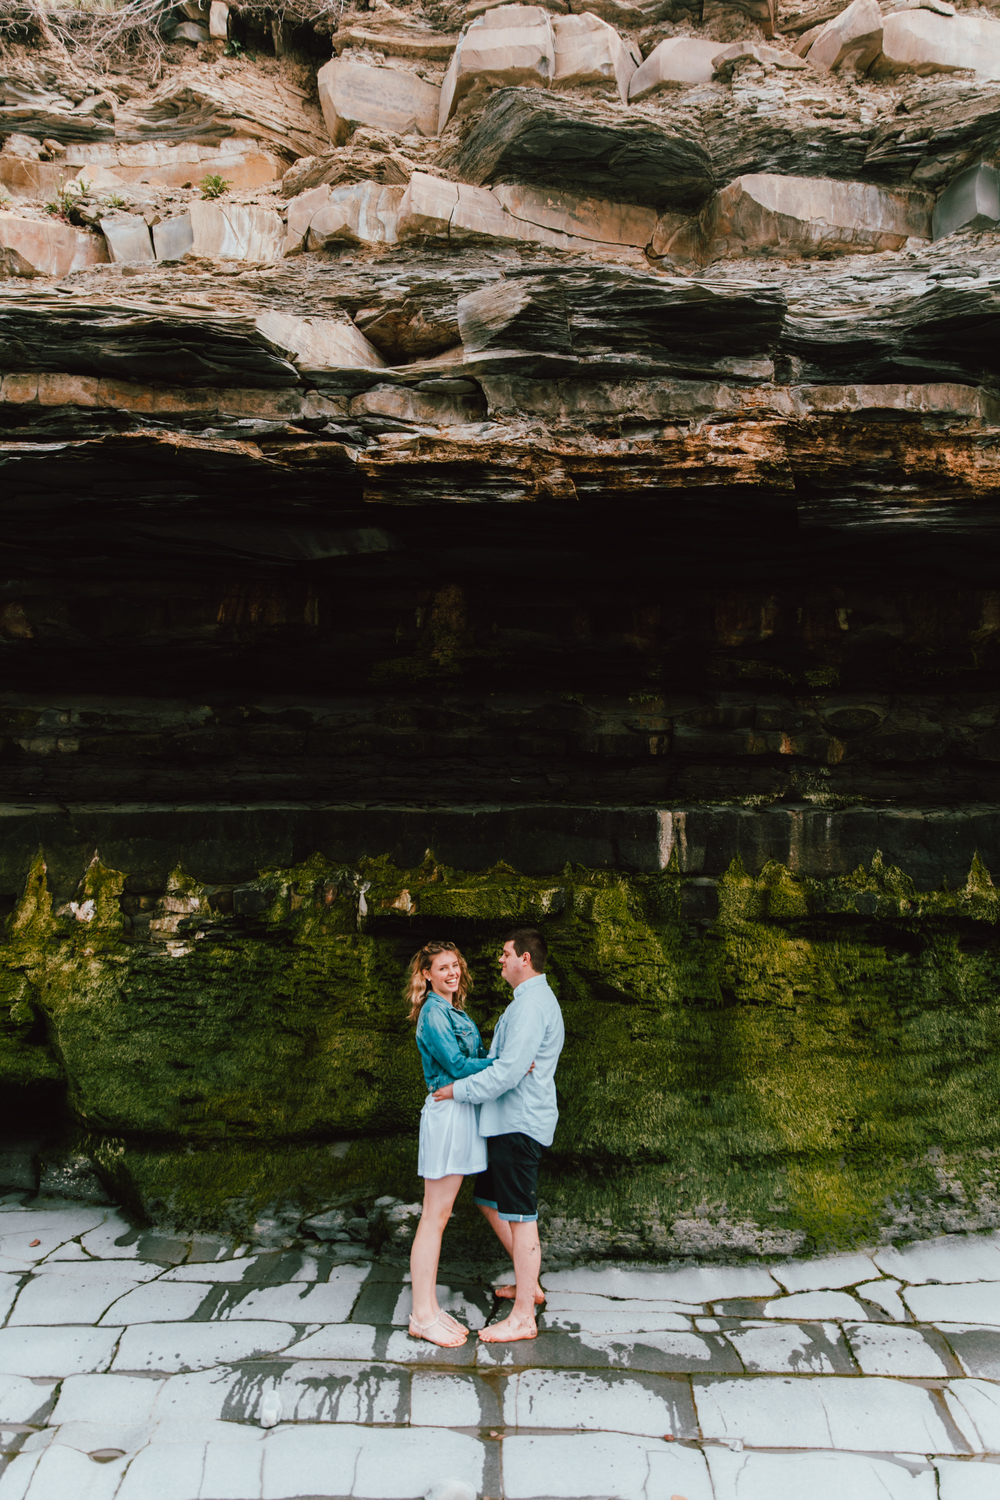 Sean & Abi - Engagement (80 of 105).jpg